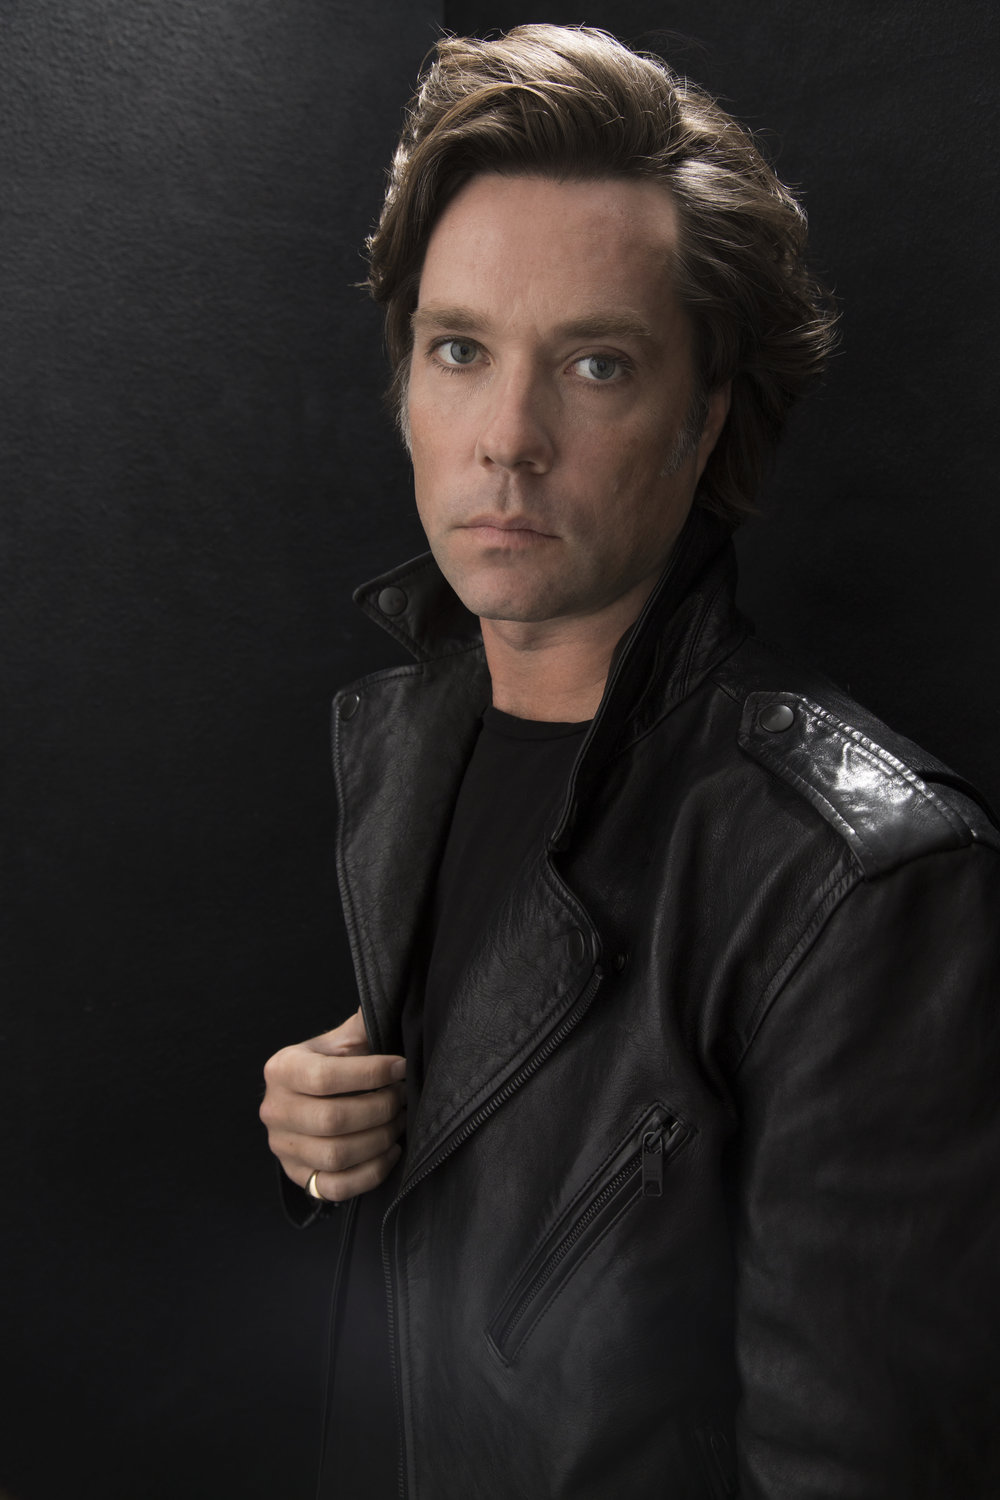 Rufus Wainwright | Tarrytown Music Hall | 4.20.17 | 8 PM